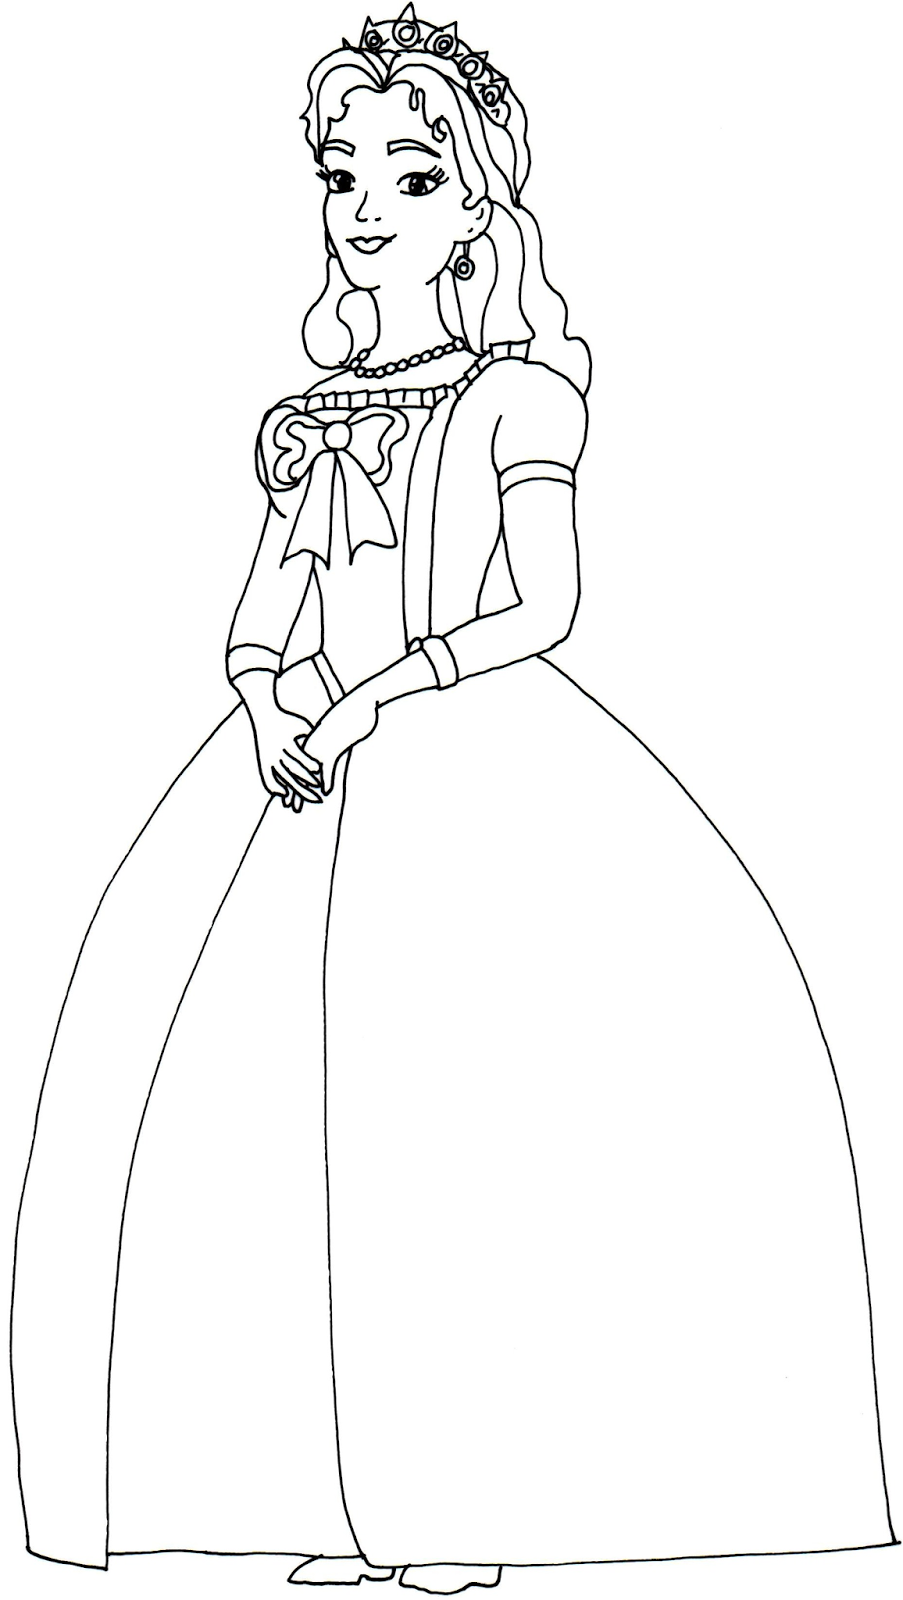 free coloring pages kings and queens coloring home King and Queen Crown Coloring Pages  Coloring Pages King And Queen